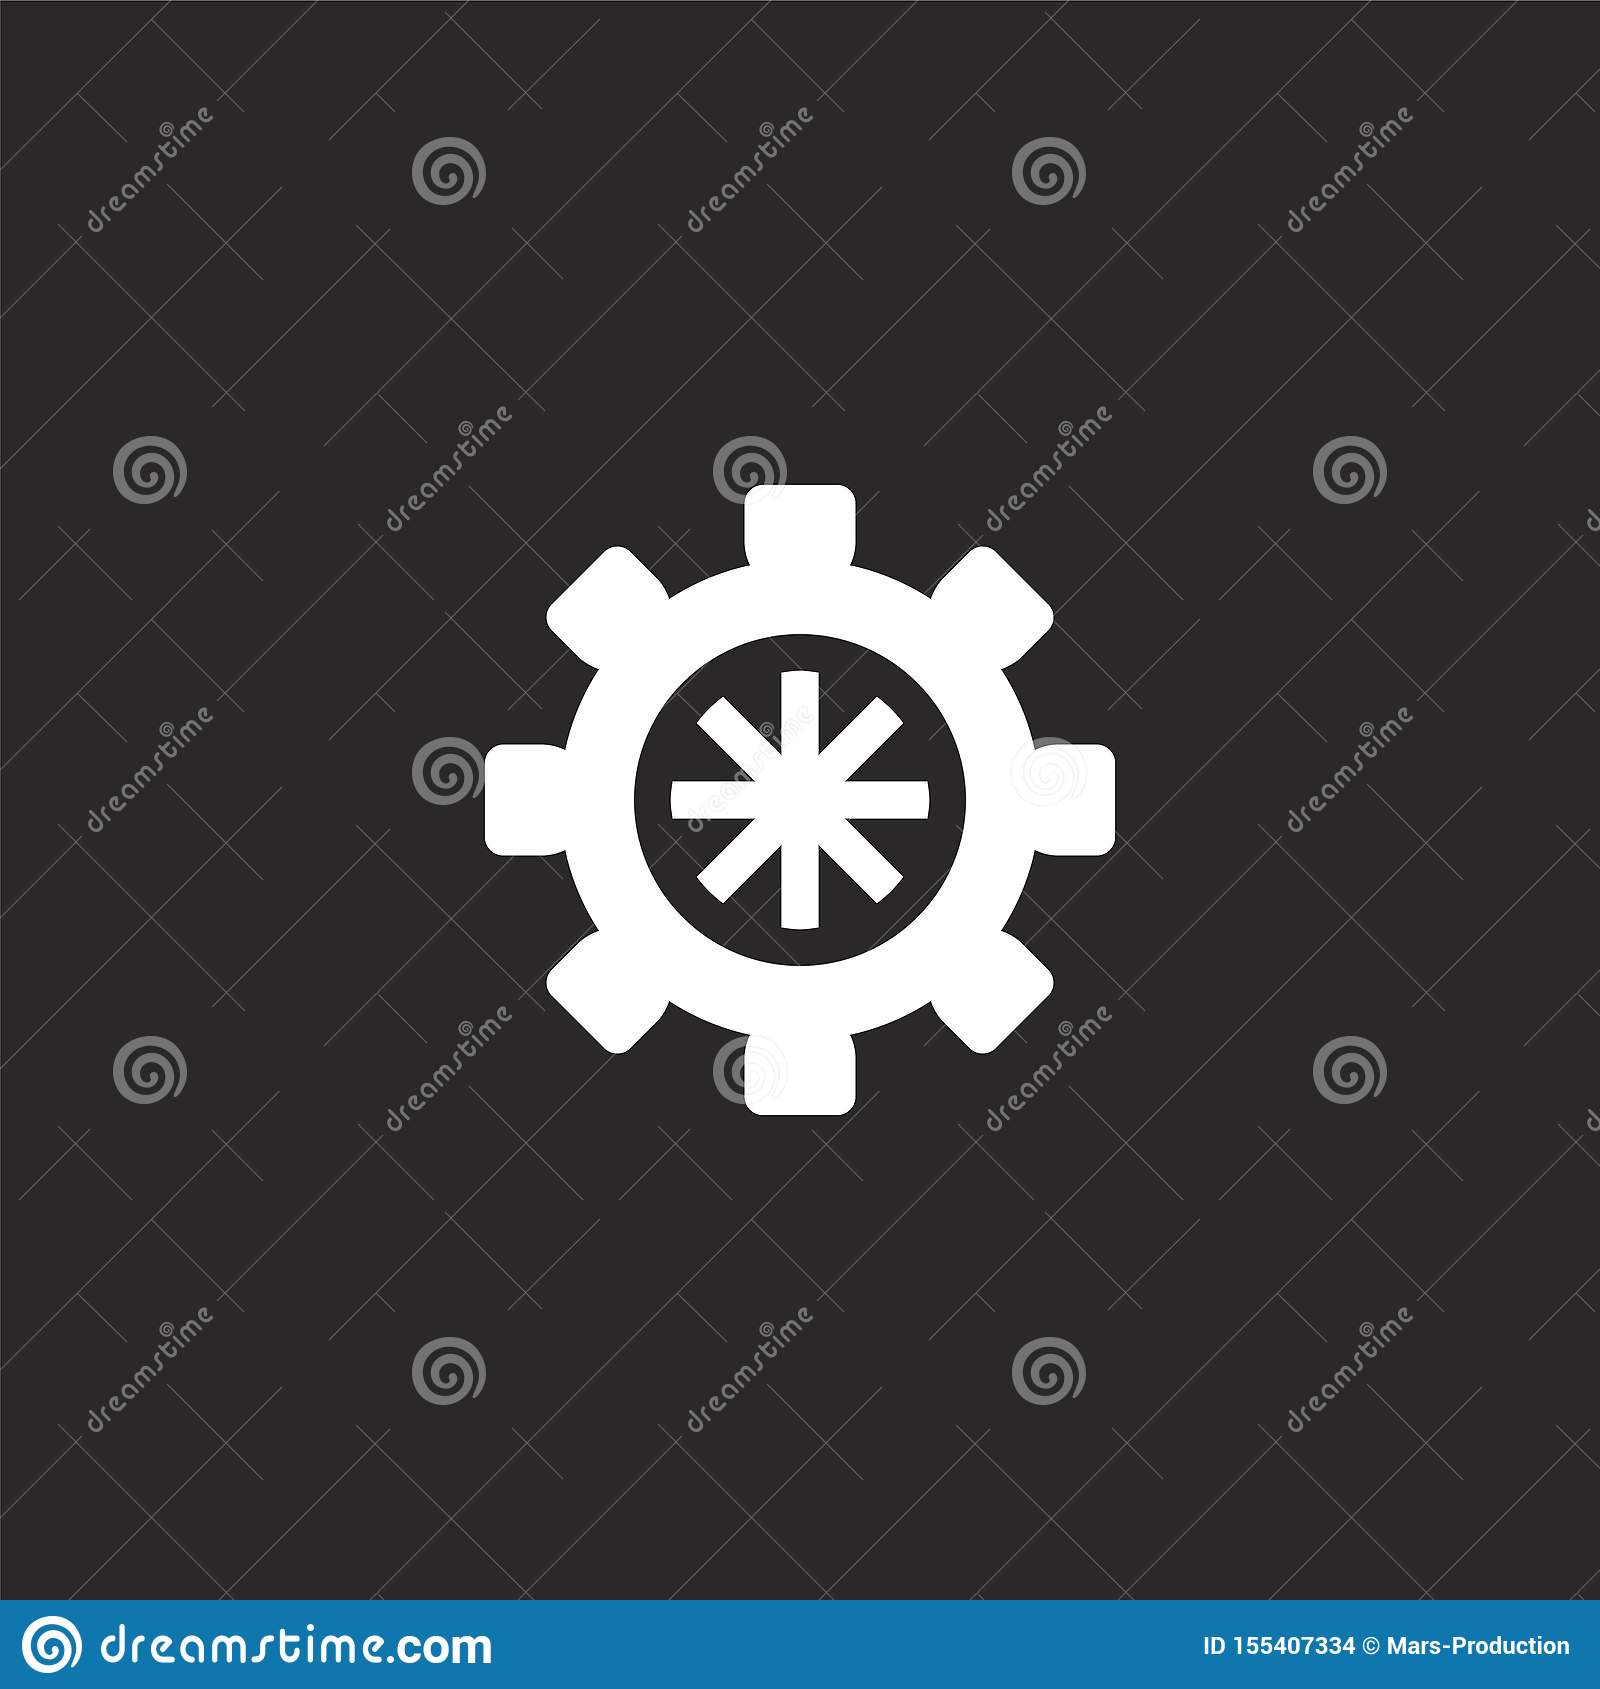 helm icon. filled helm icon for website design and mobile